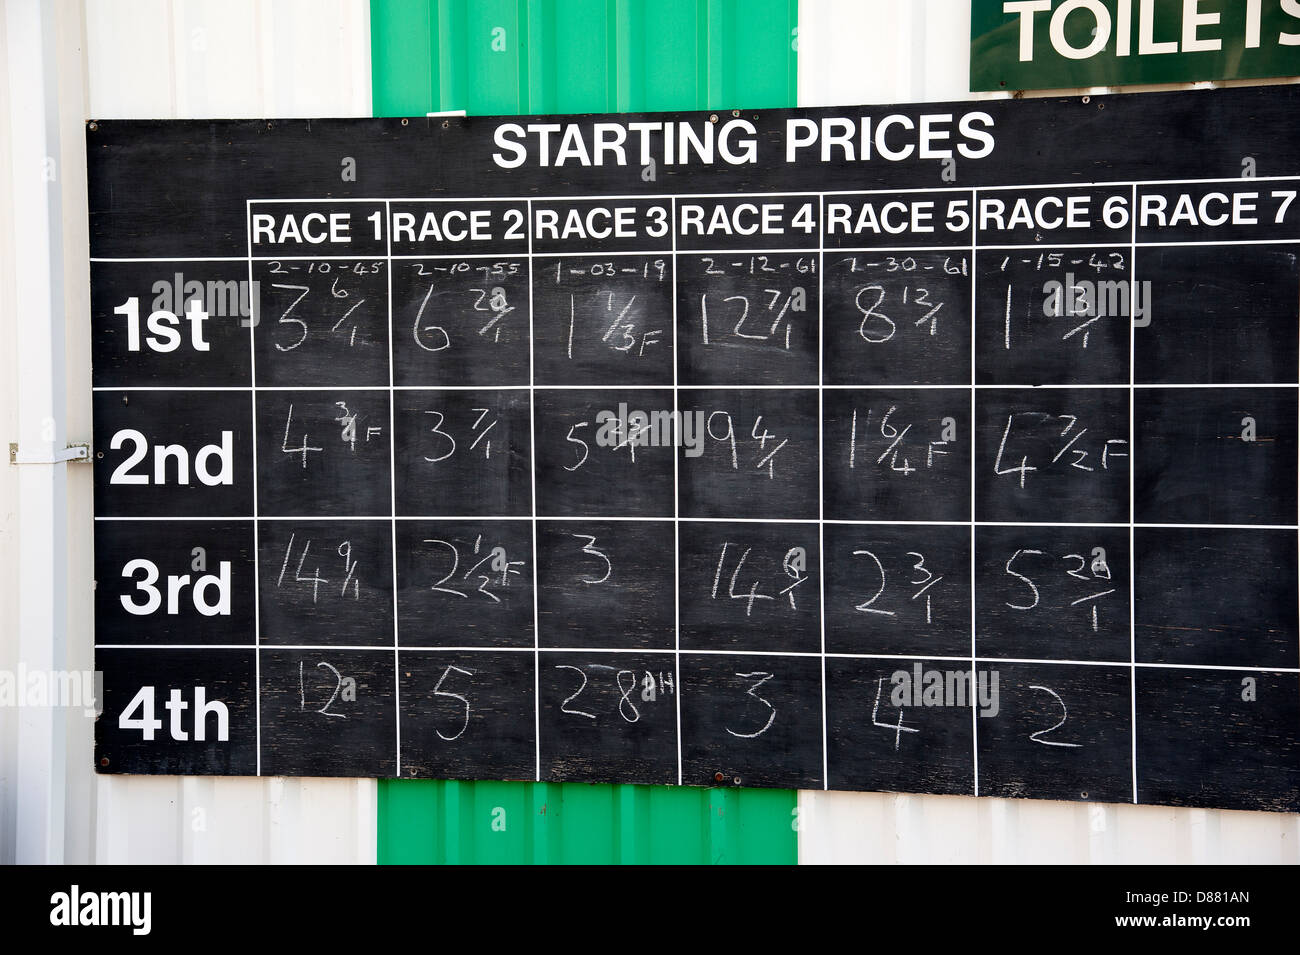 Horse racing winners odds and starting prices - Stock Image